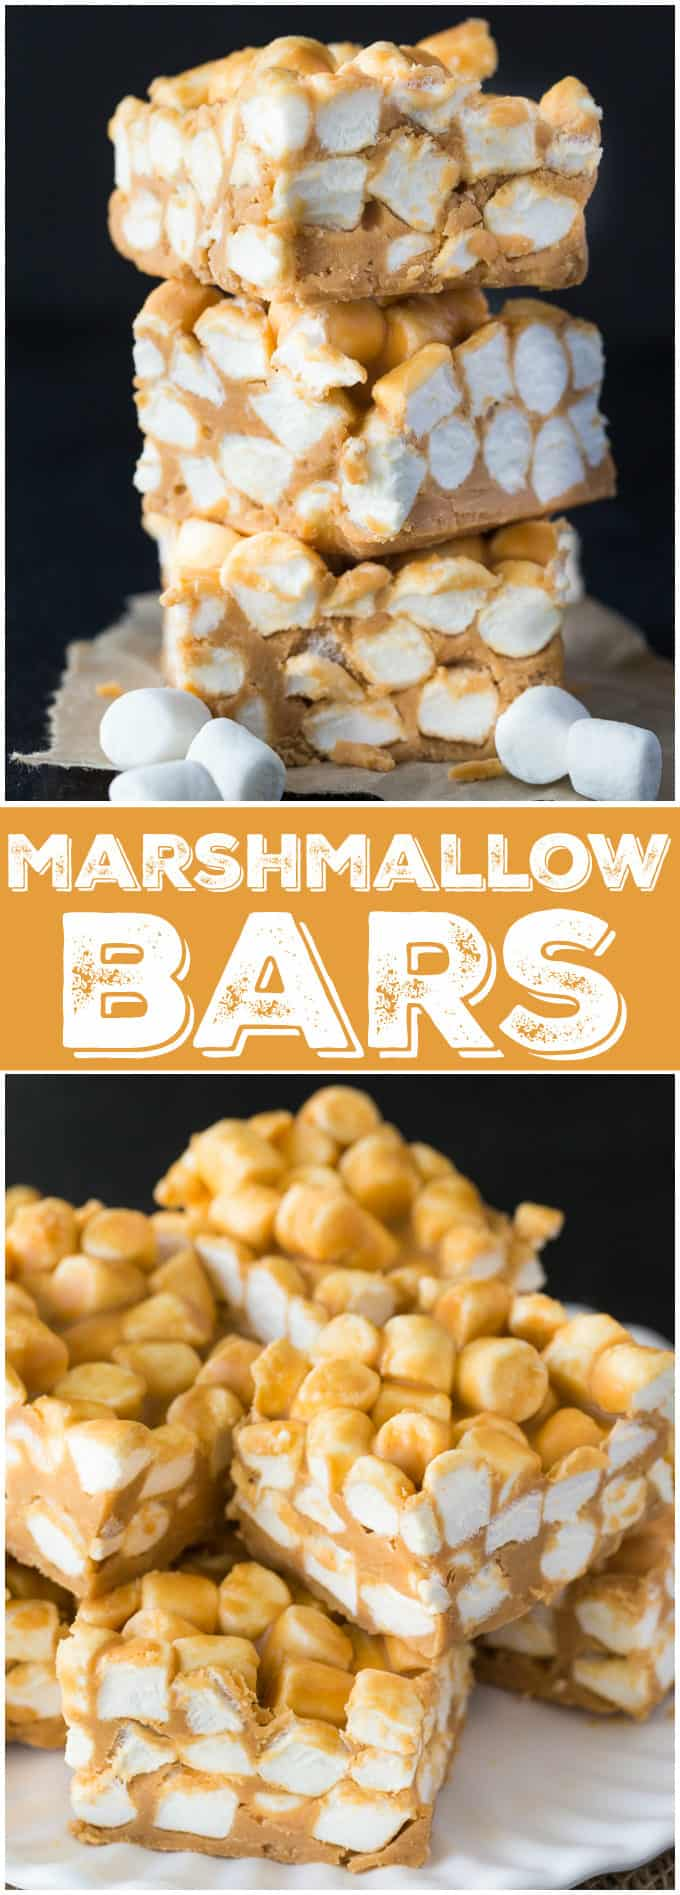 Marshmallow Bars - Delicious no-bake dessert! Peanut butter, marshmallows, and butterscotch are combined in these bars.